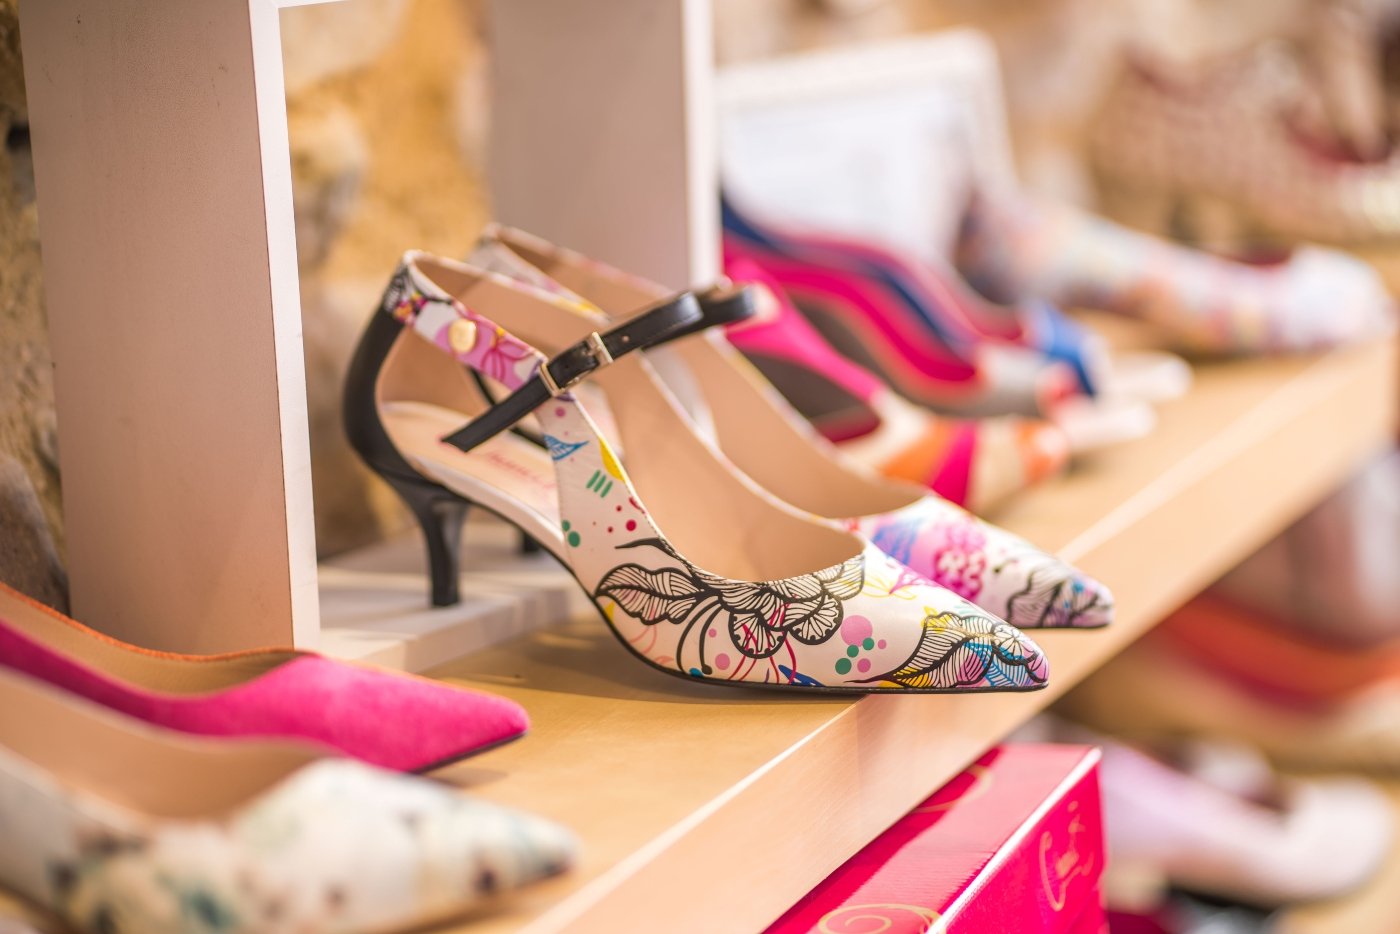 Chanii B Shoes in Milsom Place